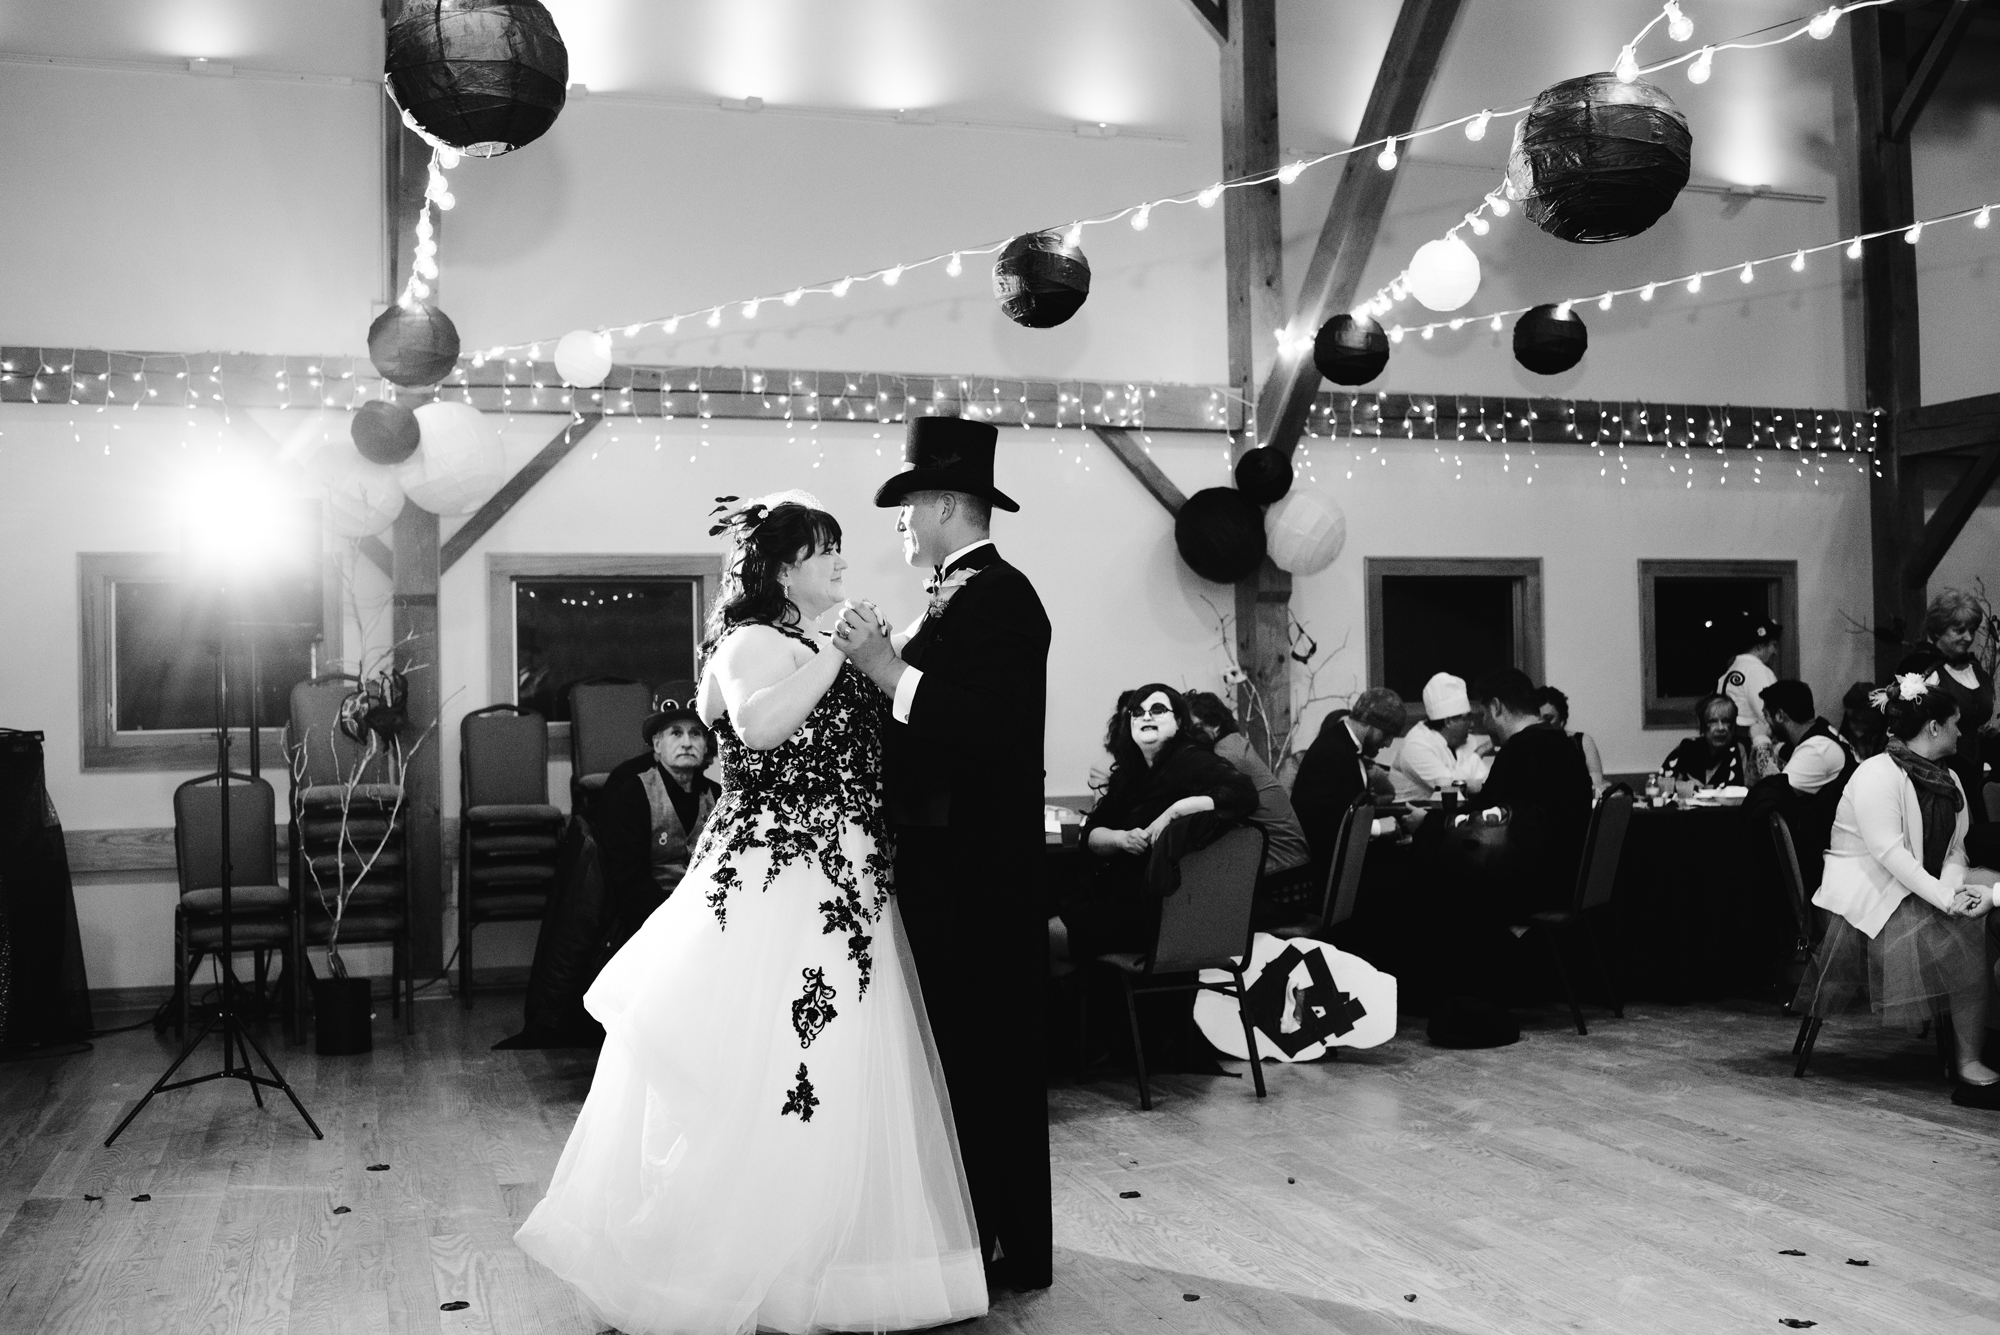 ann-arbor-michigan-halloween-themed-wedding-dancing-photos (17).jpg